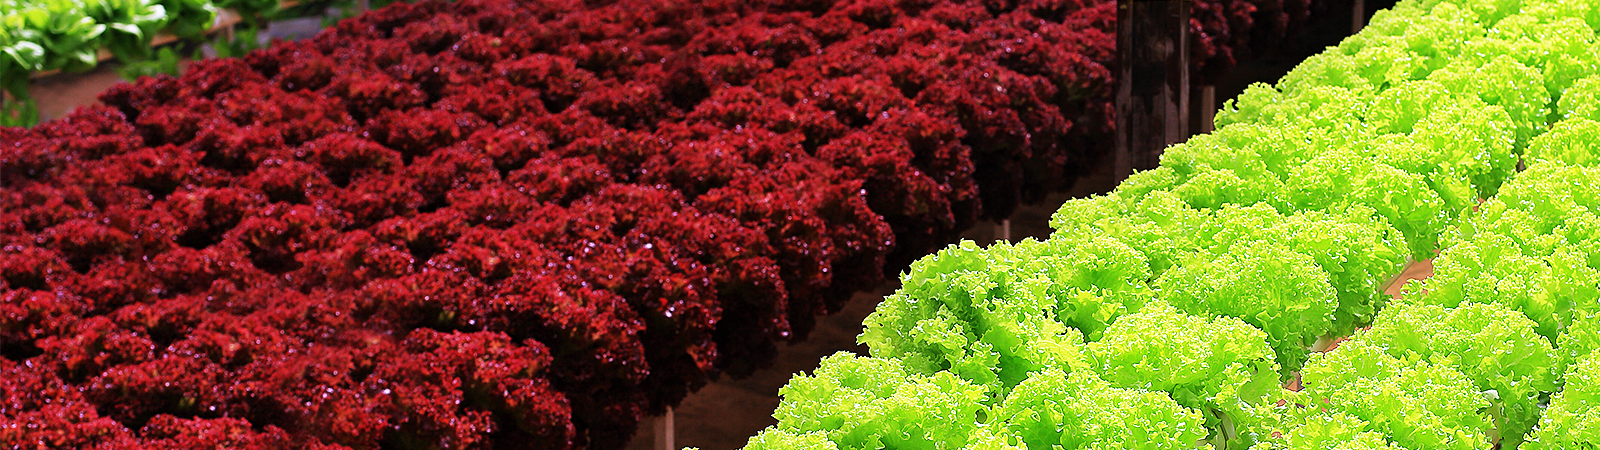 Producing red lettuce with horticultural LED